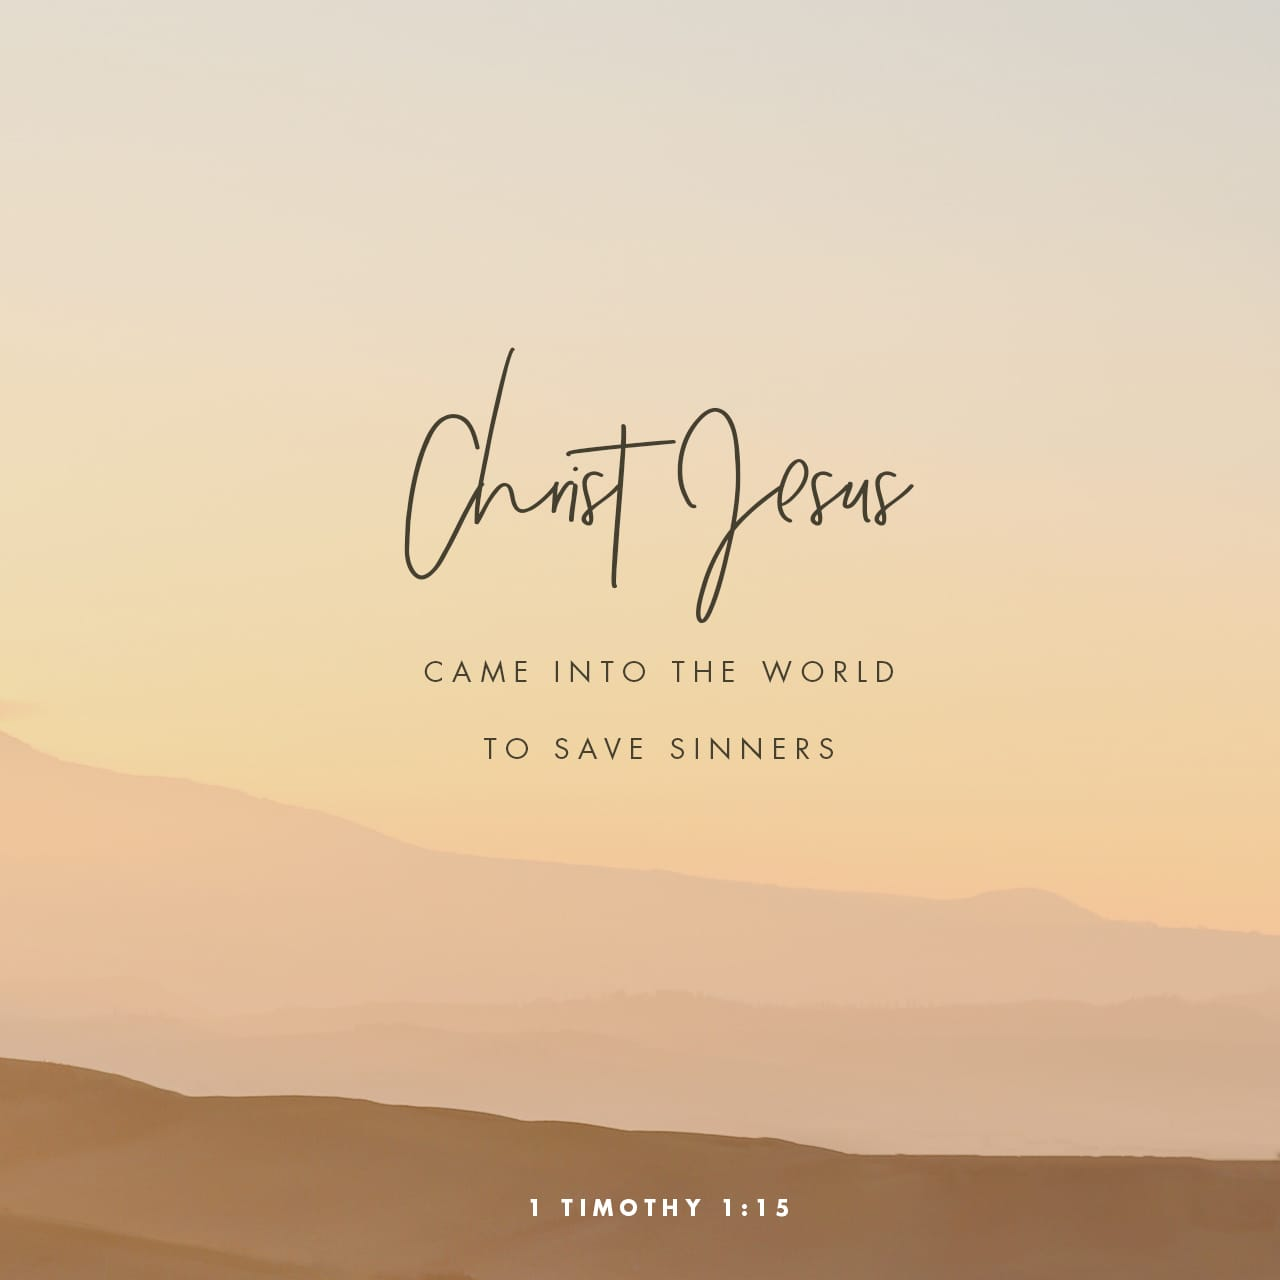 1 Timothy 1:15 The saying is trustworthy and deserving of full acceptance, that Christ Jesus came into the world to save sinners, of whom I am the foremost. | English Standard Version (ESV)